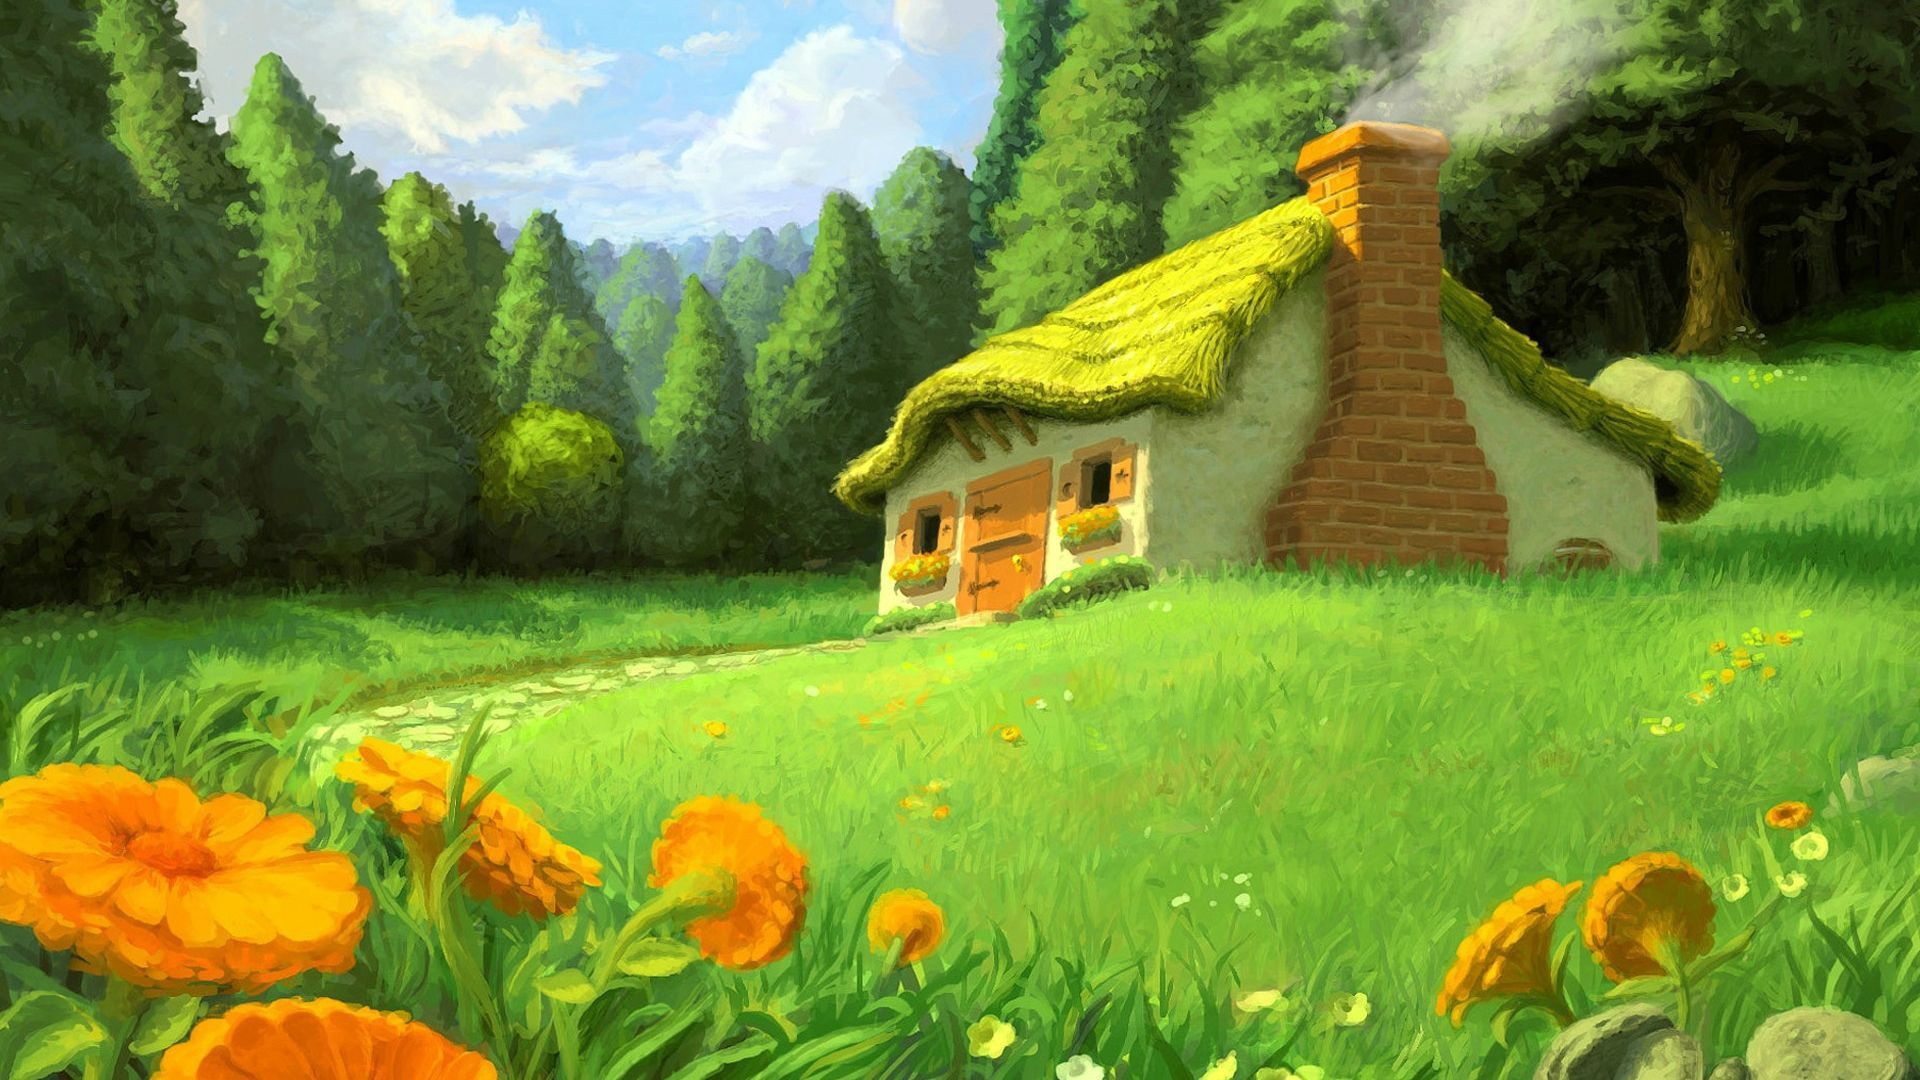 Nature Wallpaper Cartoon